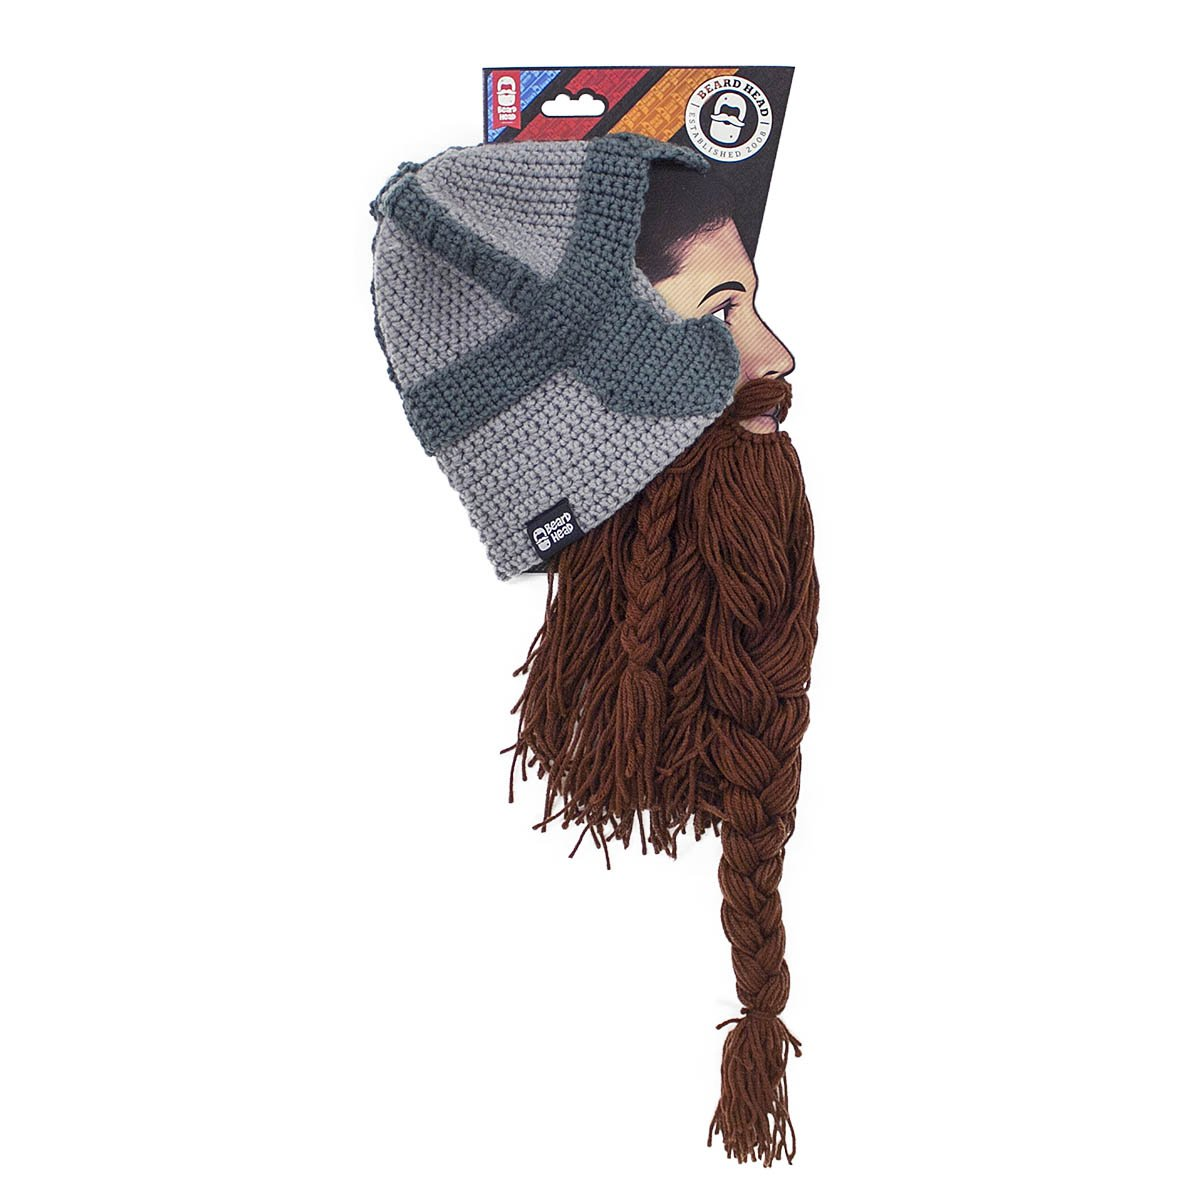 f8f6d0e68a1438 ... Beard Head Dwarf Warrior Beard Beanie - Epic Knit Dwarf Helmet w/Fake  Beard BRB1007BL ...